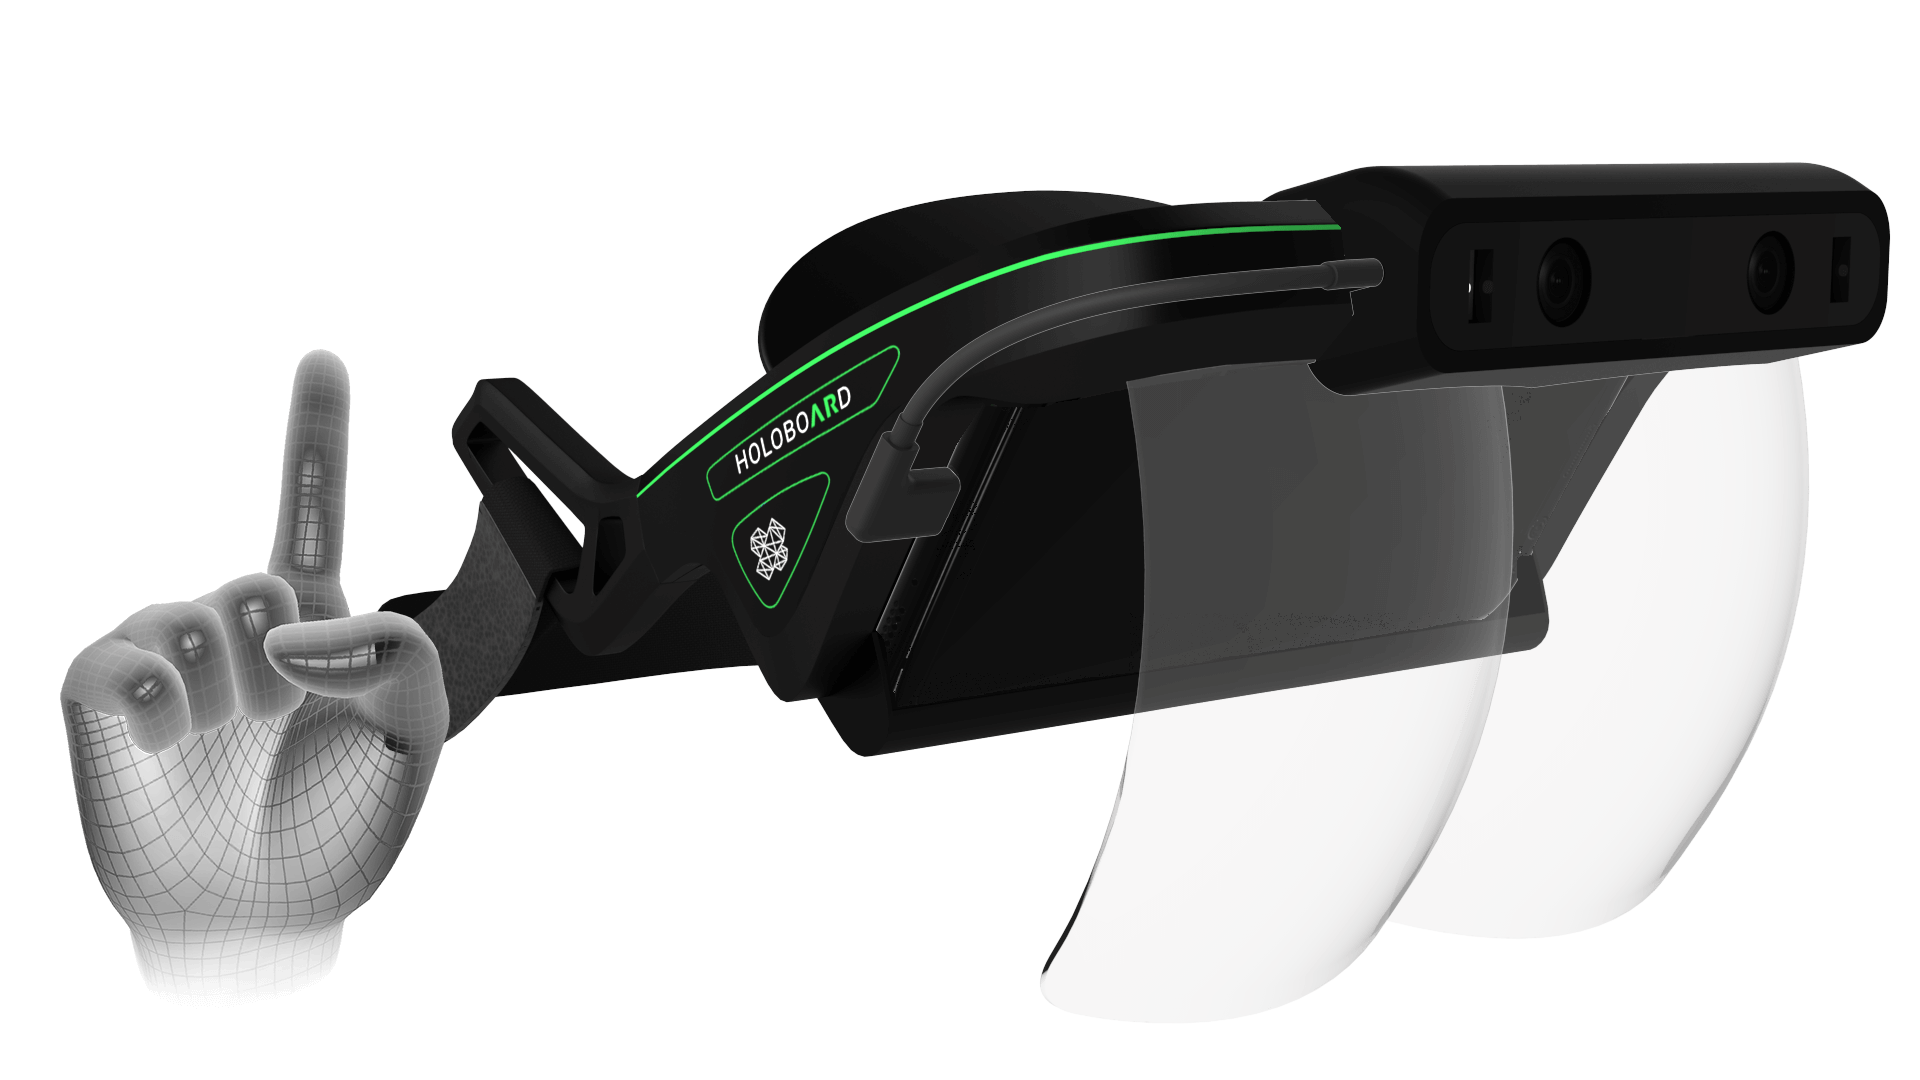 Holoboard Mixed Reality Headset - PREMIUM